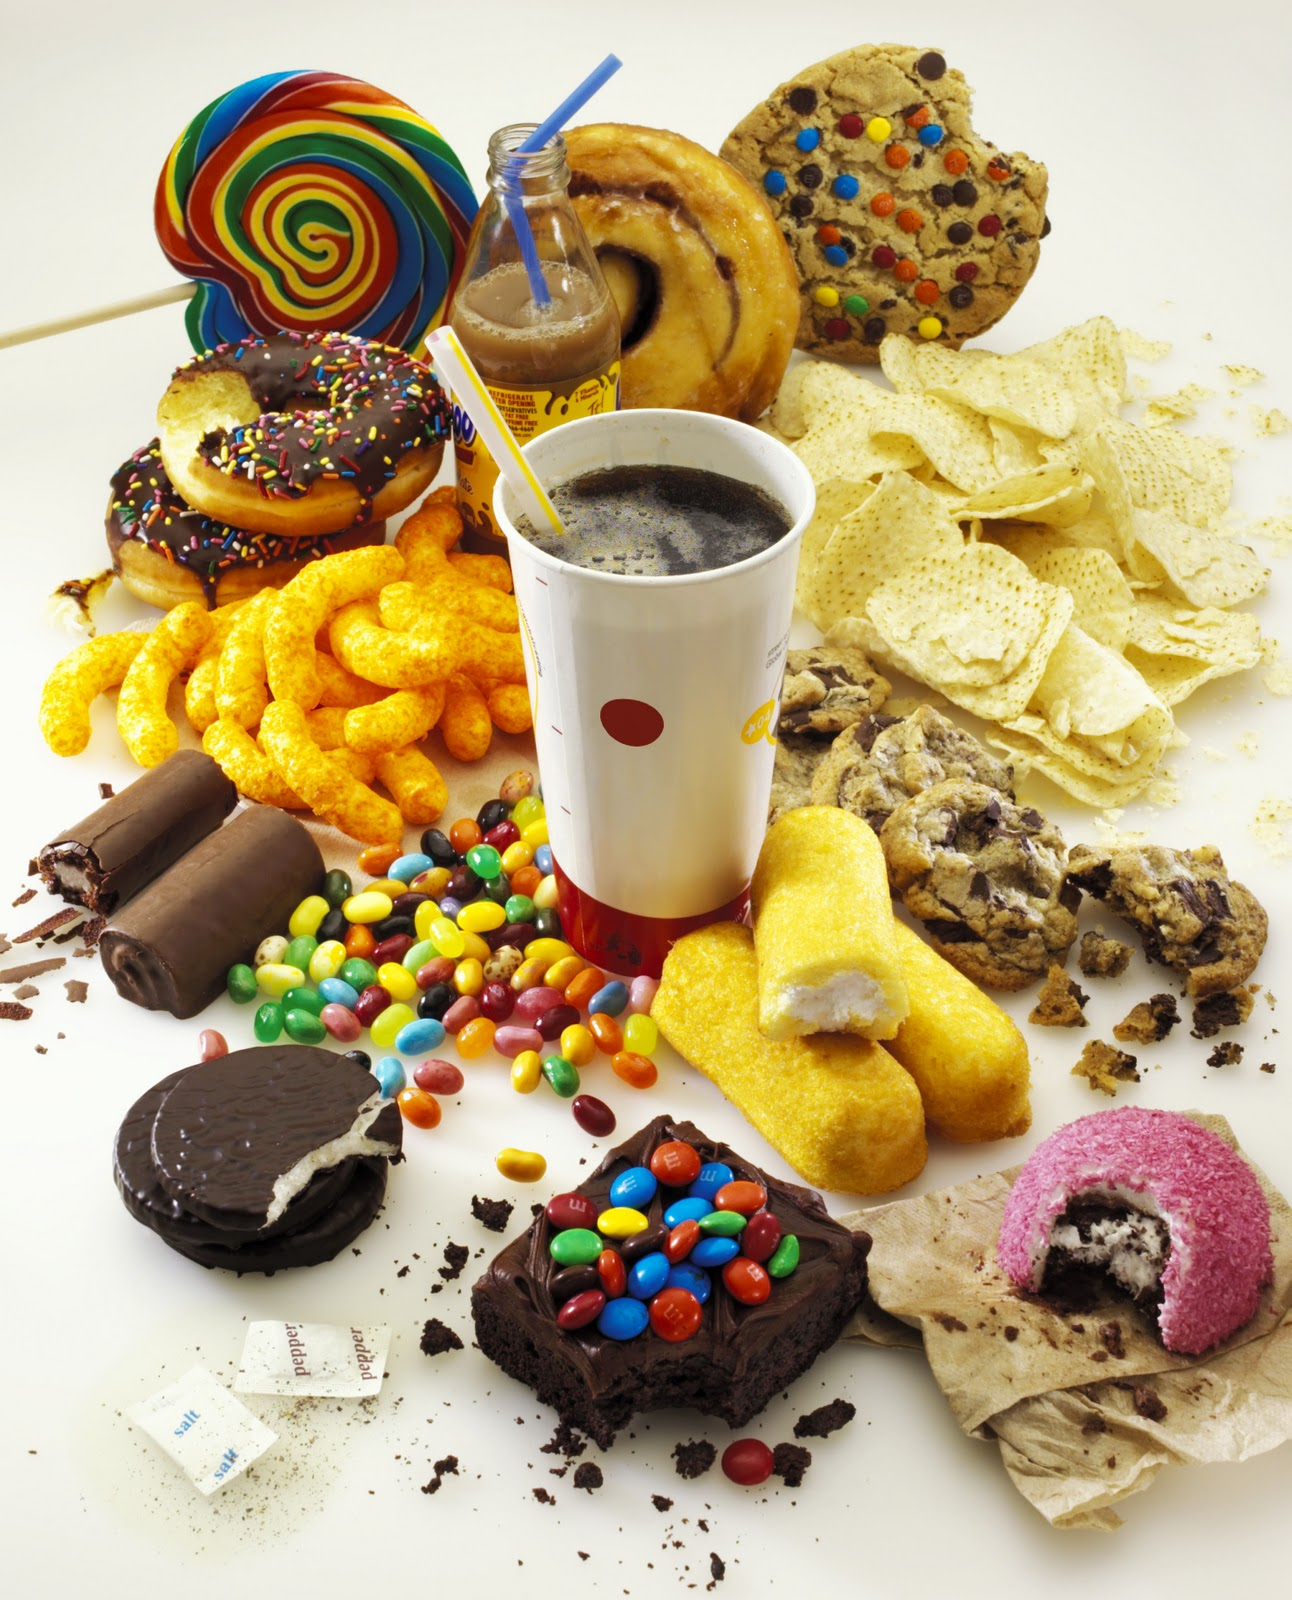 unhealthy food nutrition at Bradley Chiropractic Nutrition Center